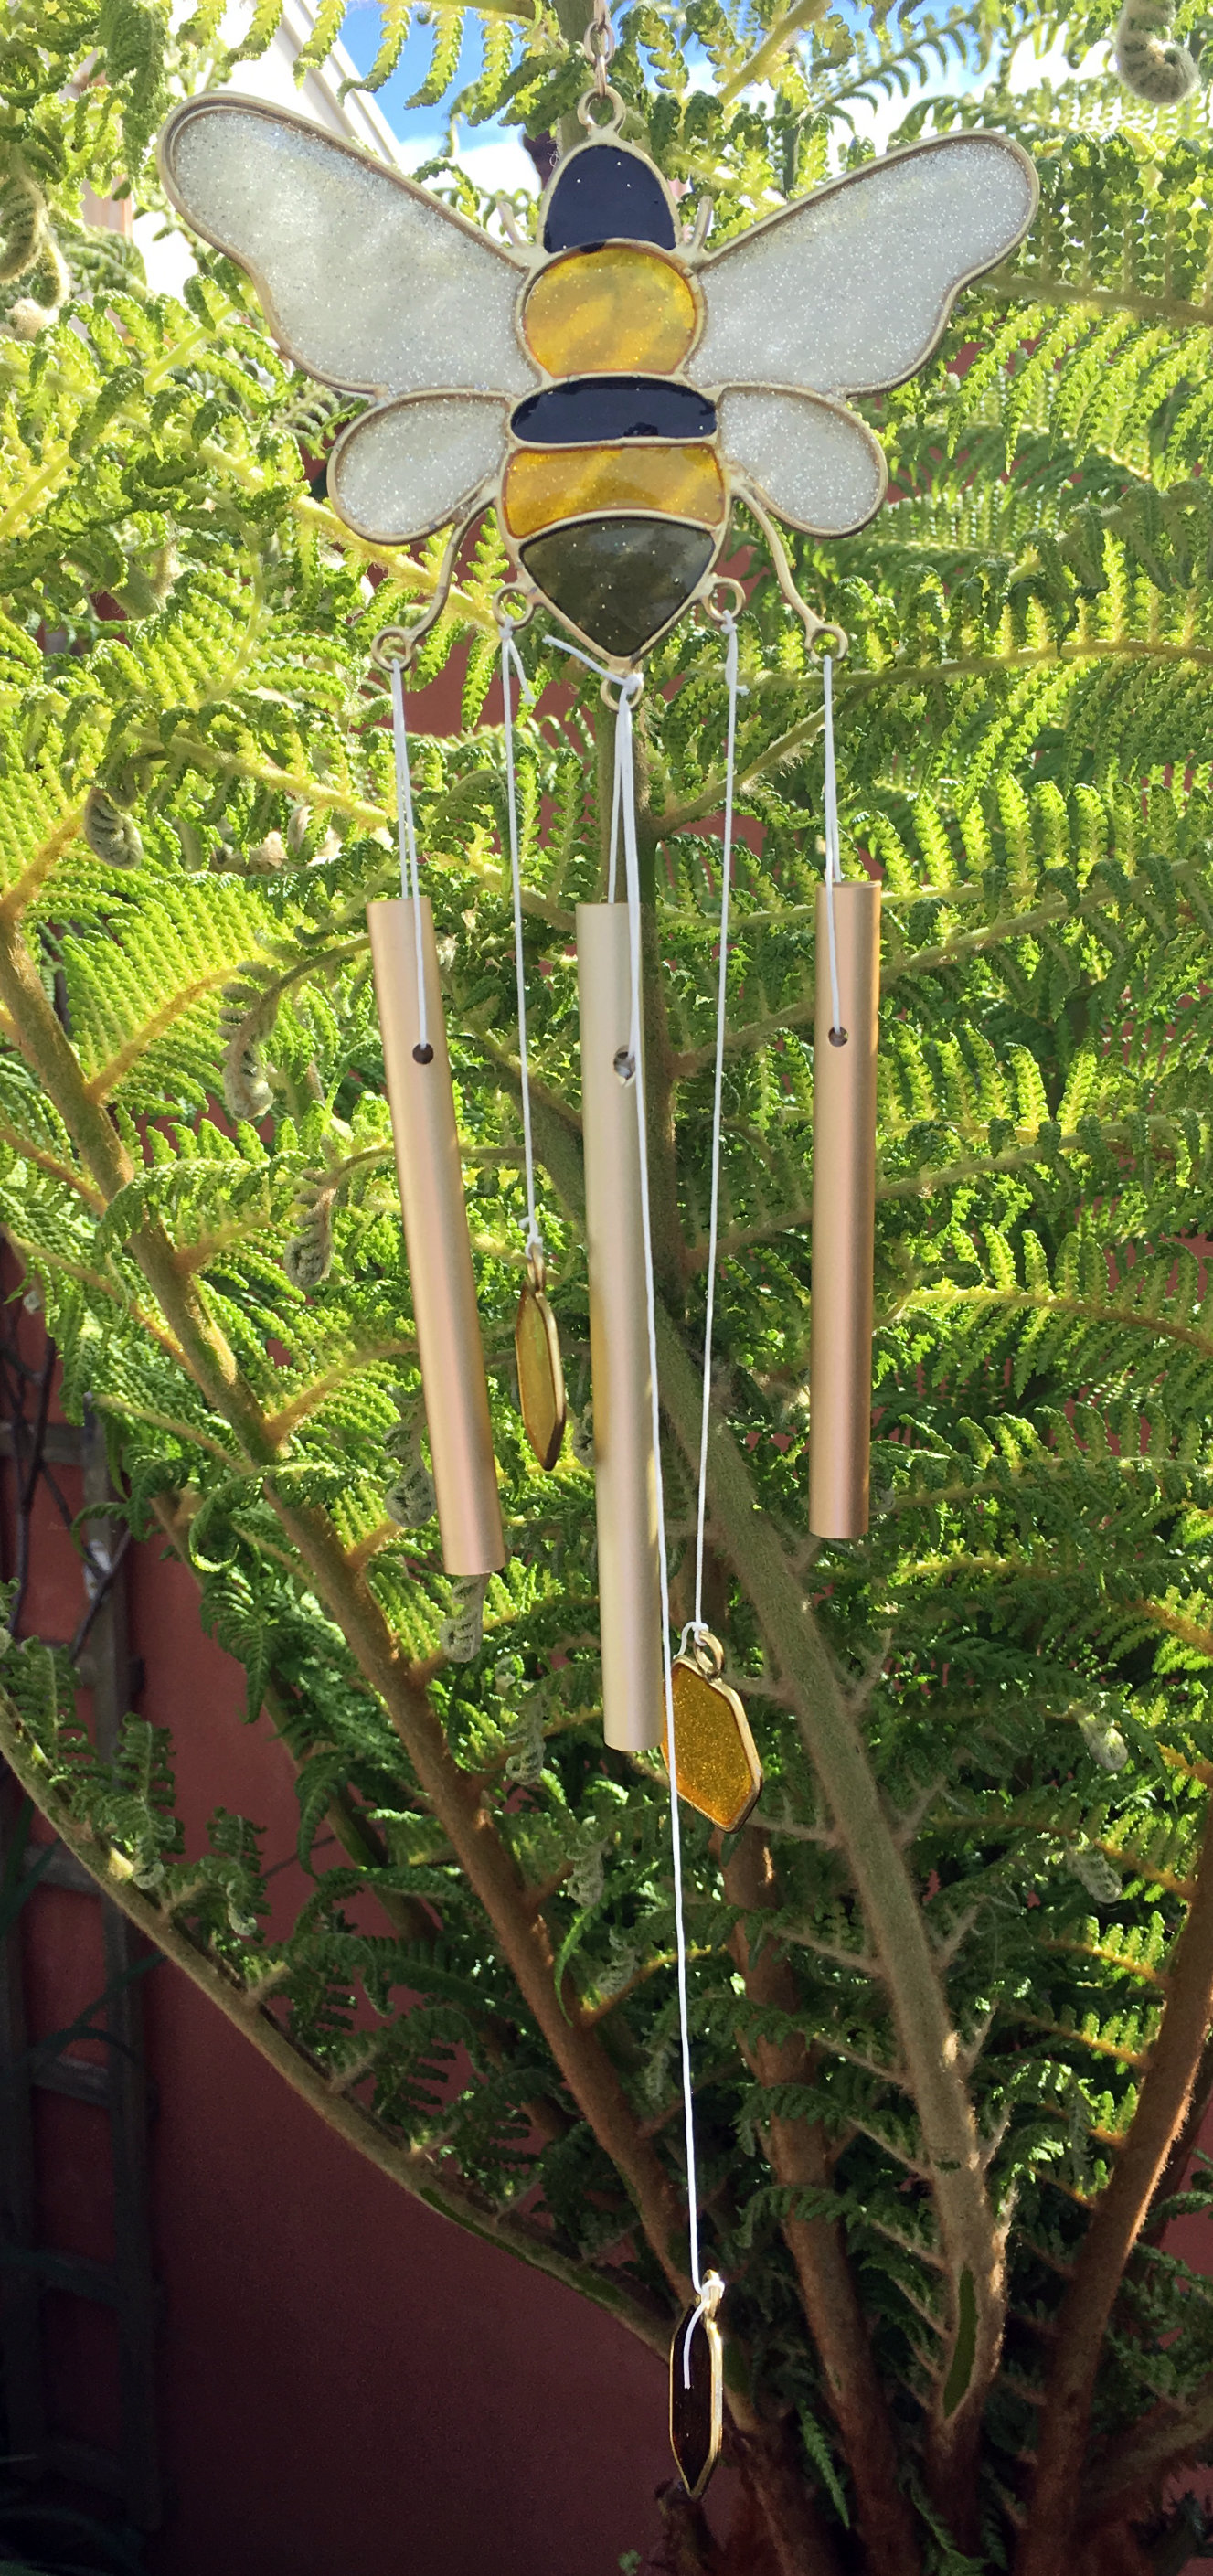 Large-Metal-amp-Glass-Hanging-Sun-Catcher-Wind-Chime-Home-Garden-Decorations thumbnail 38